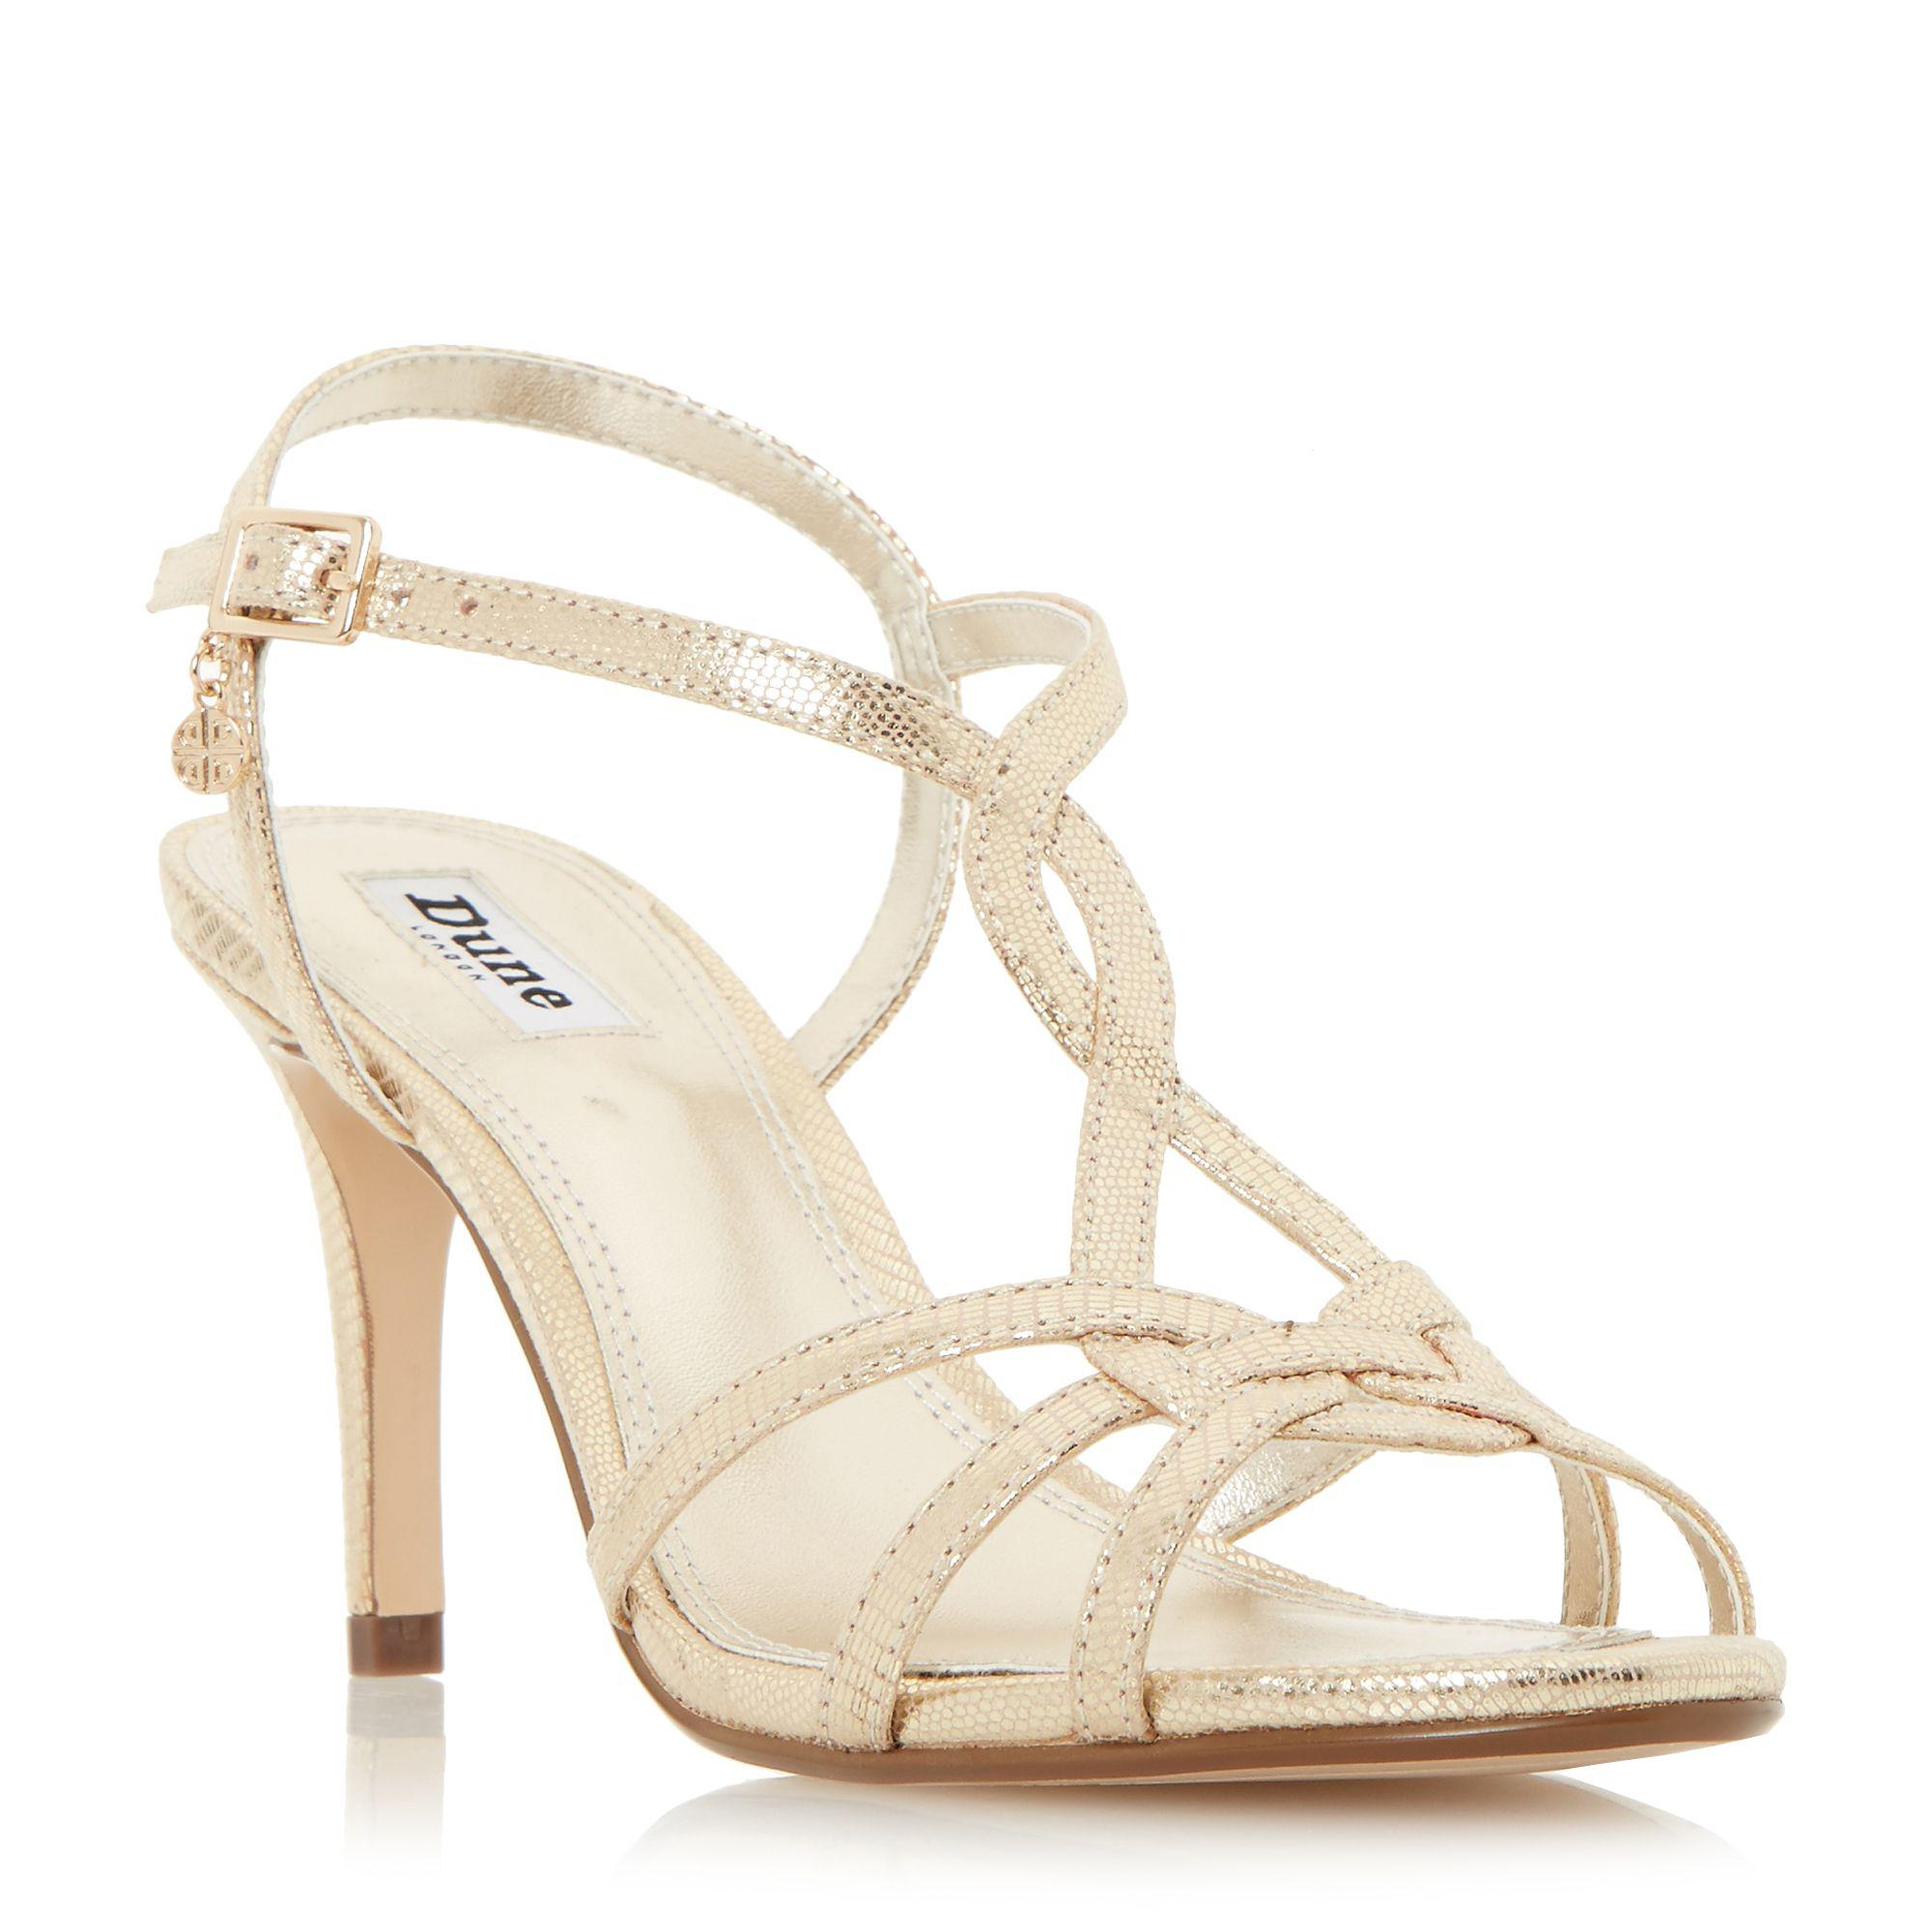 e95164a93a5 Dune Miniee Strappy Mid Sandals in Metallic - Lyst